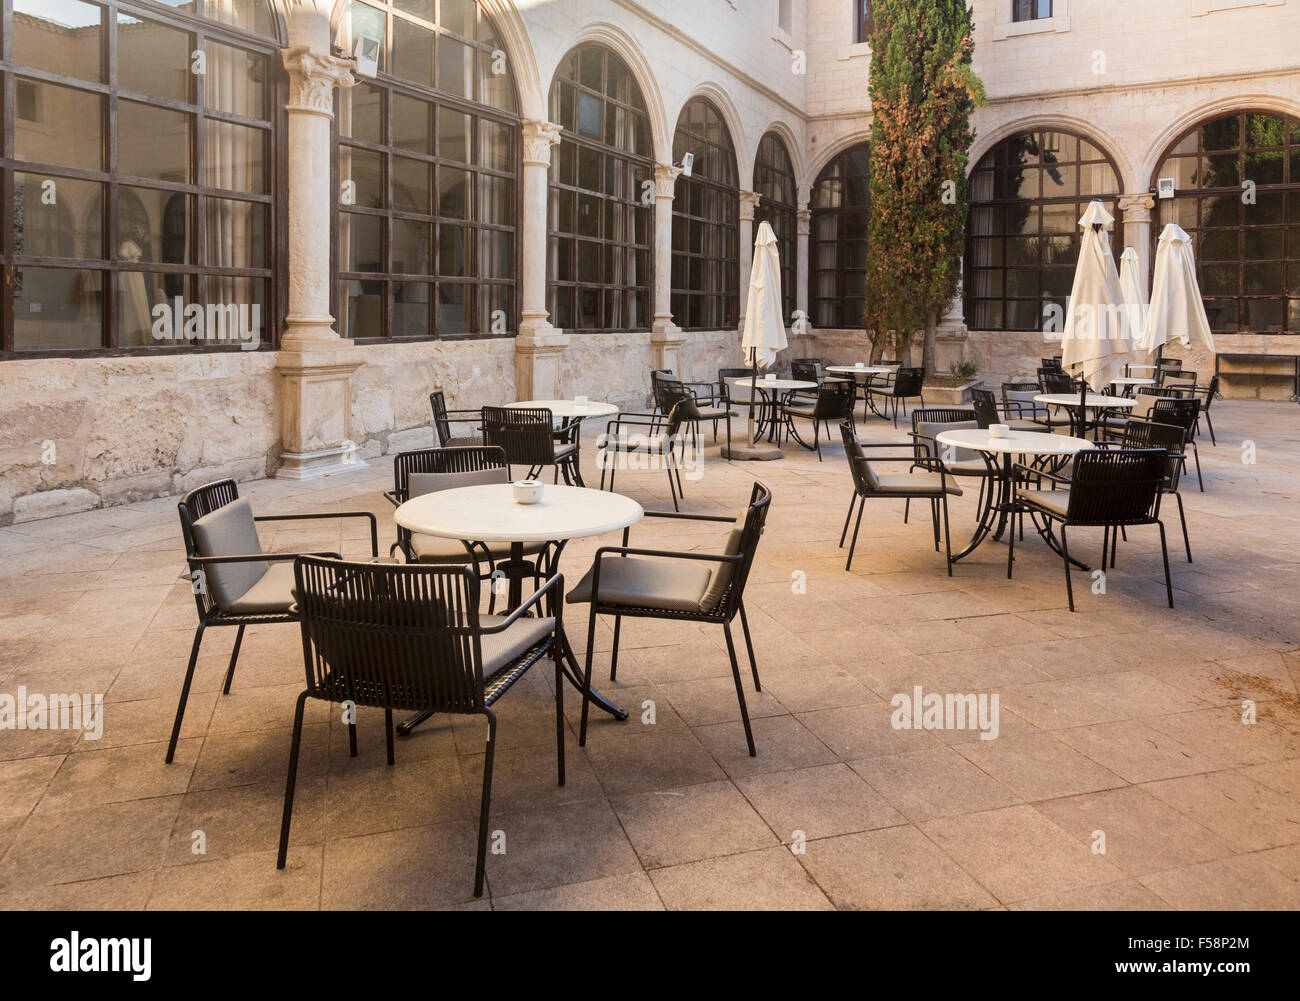 Courtyard with tables and chairs in Spain, Europe - Stock Image